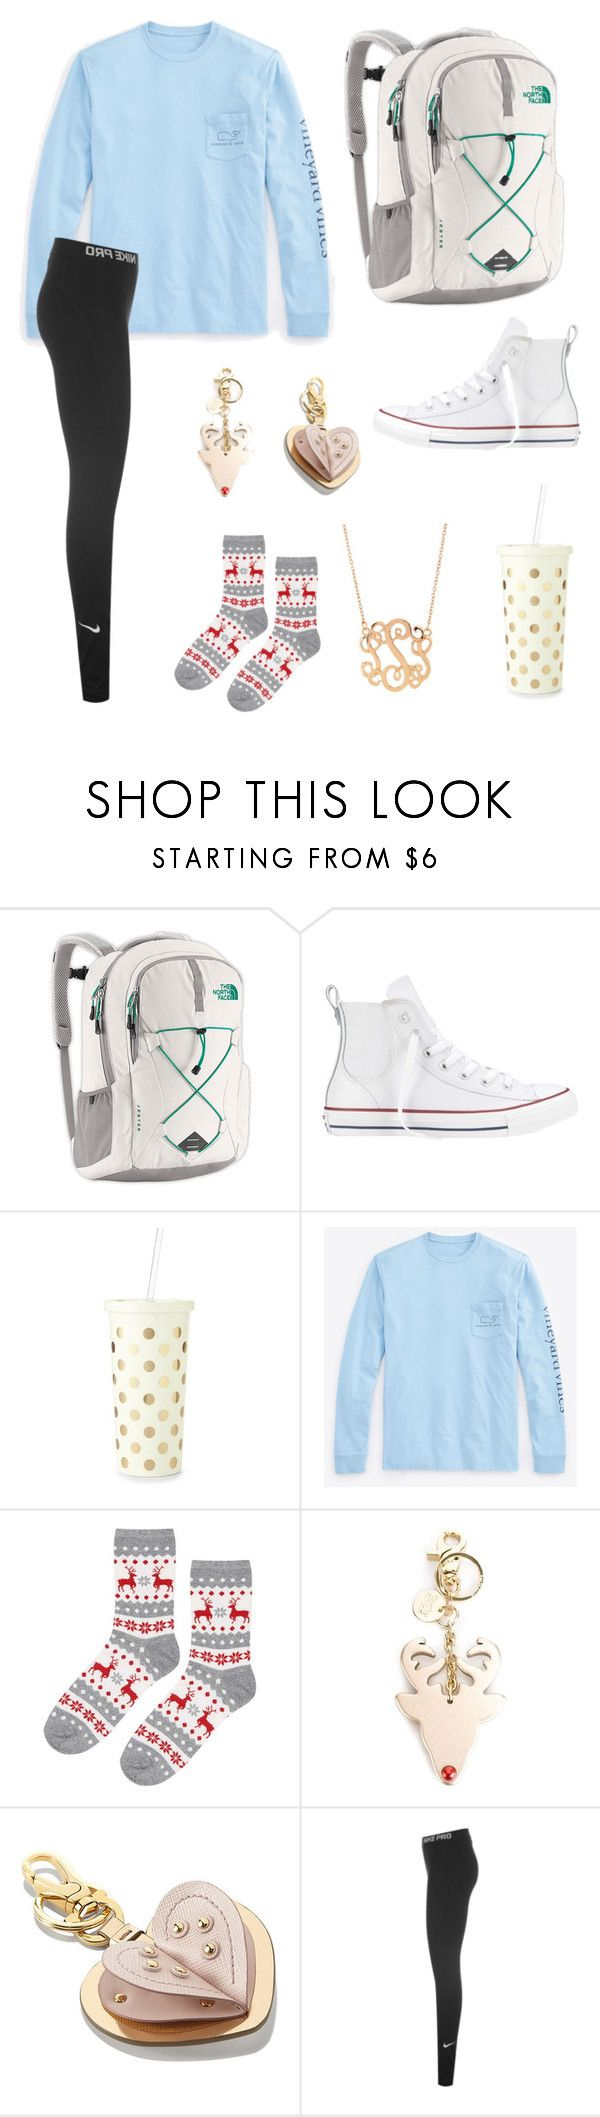 """""""Untitled #123"""" by hanah2053 ❤ liked on Polyvore featuring The North Face, Converse, Kate Spade, Vineyard Vines, Topshop, See by Chloé, Salvatore Ferragamo and NIKE"""